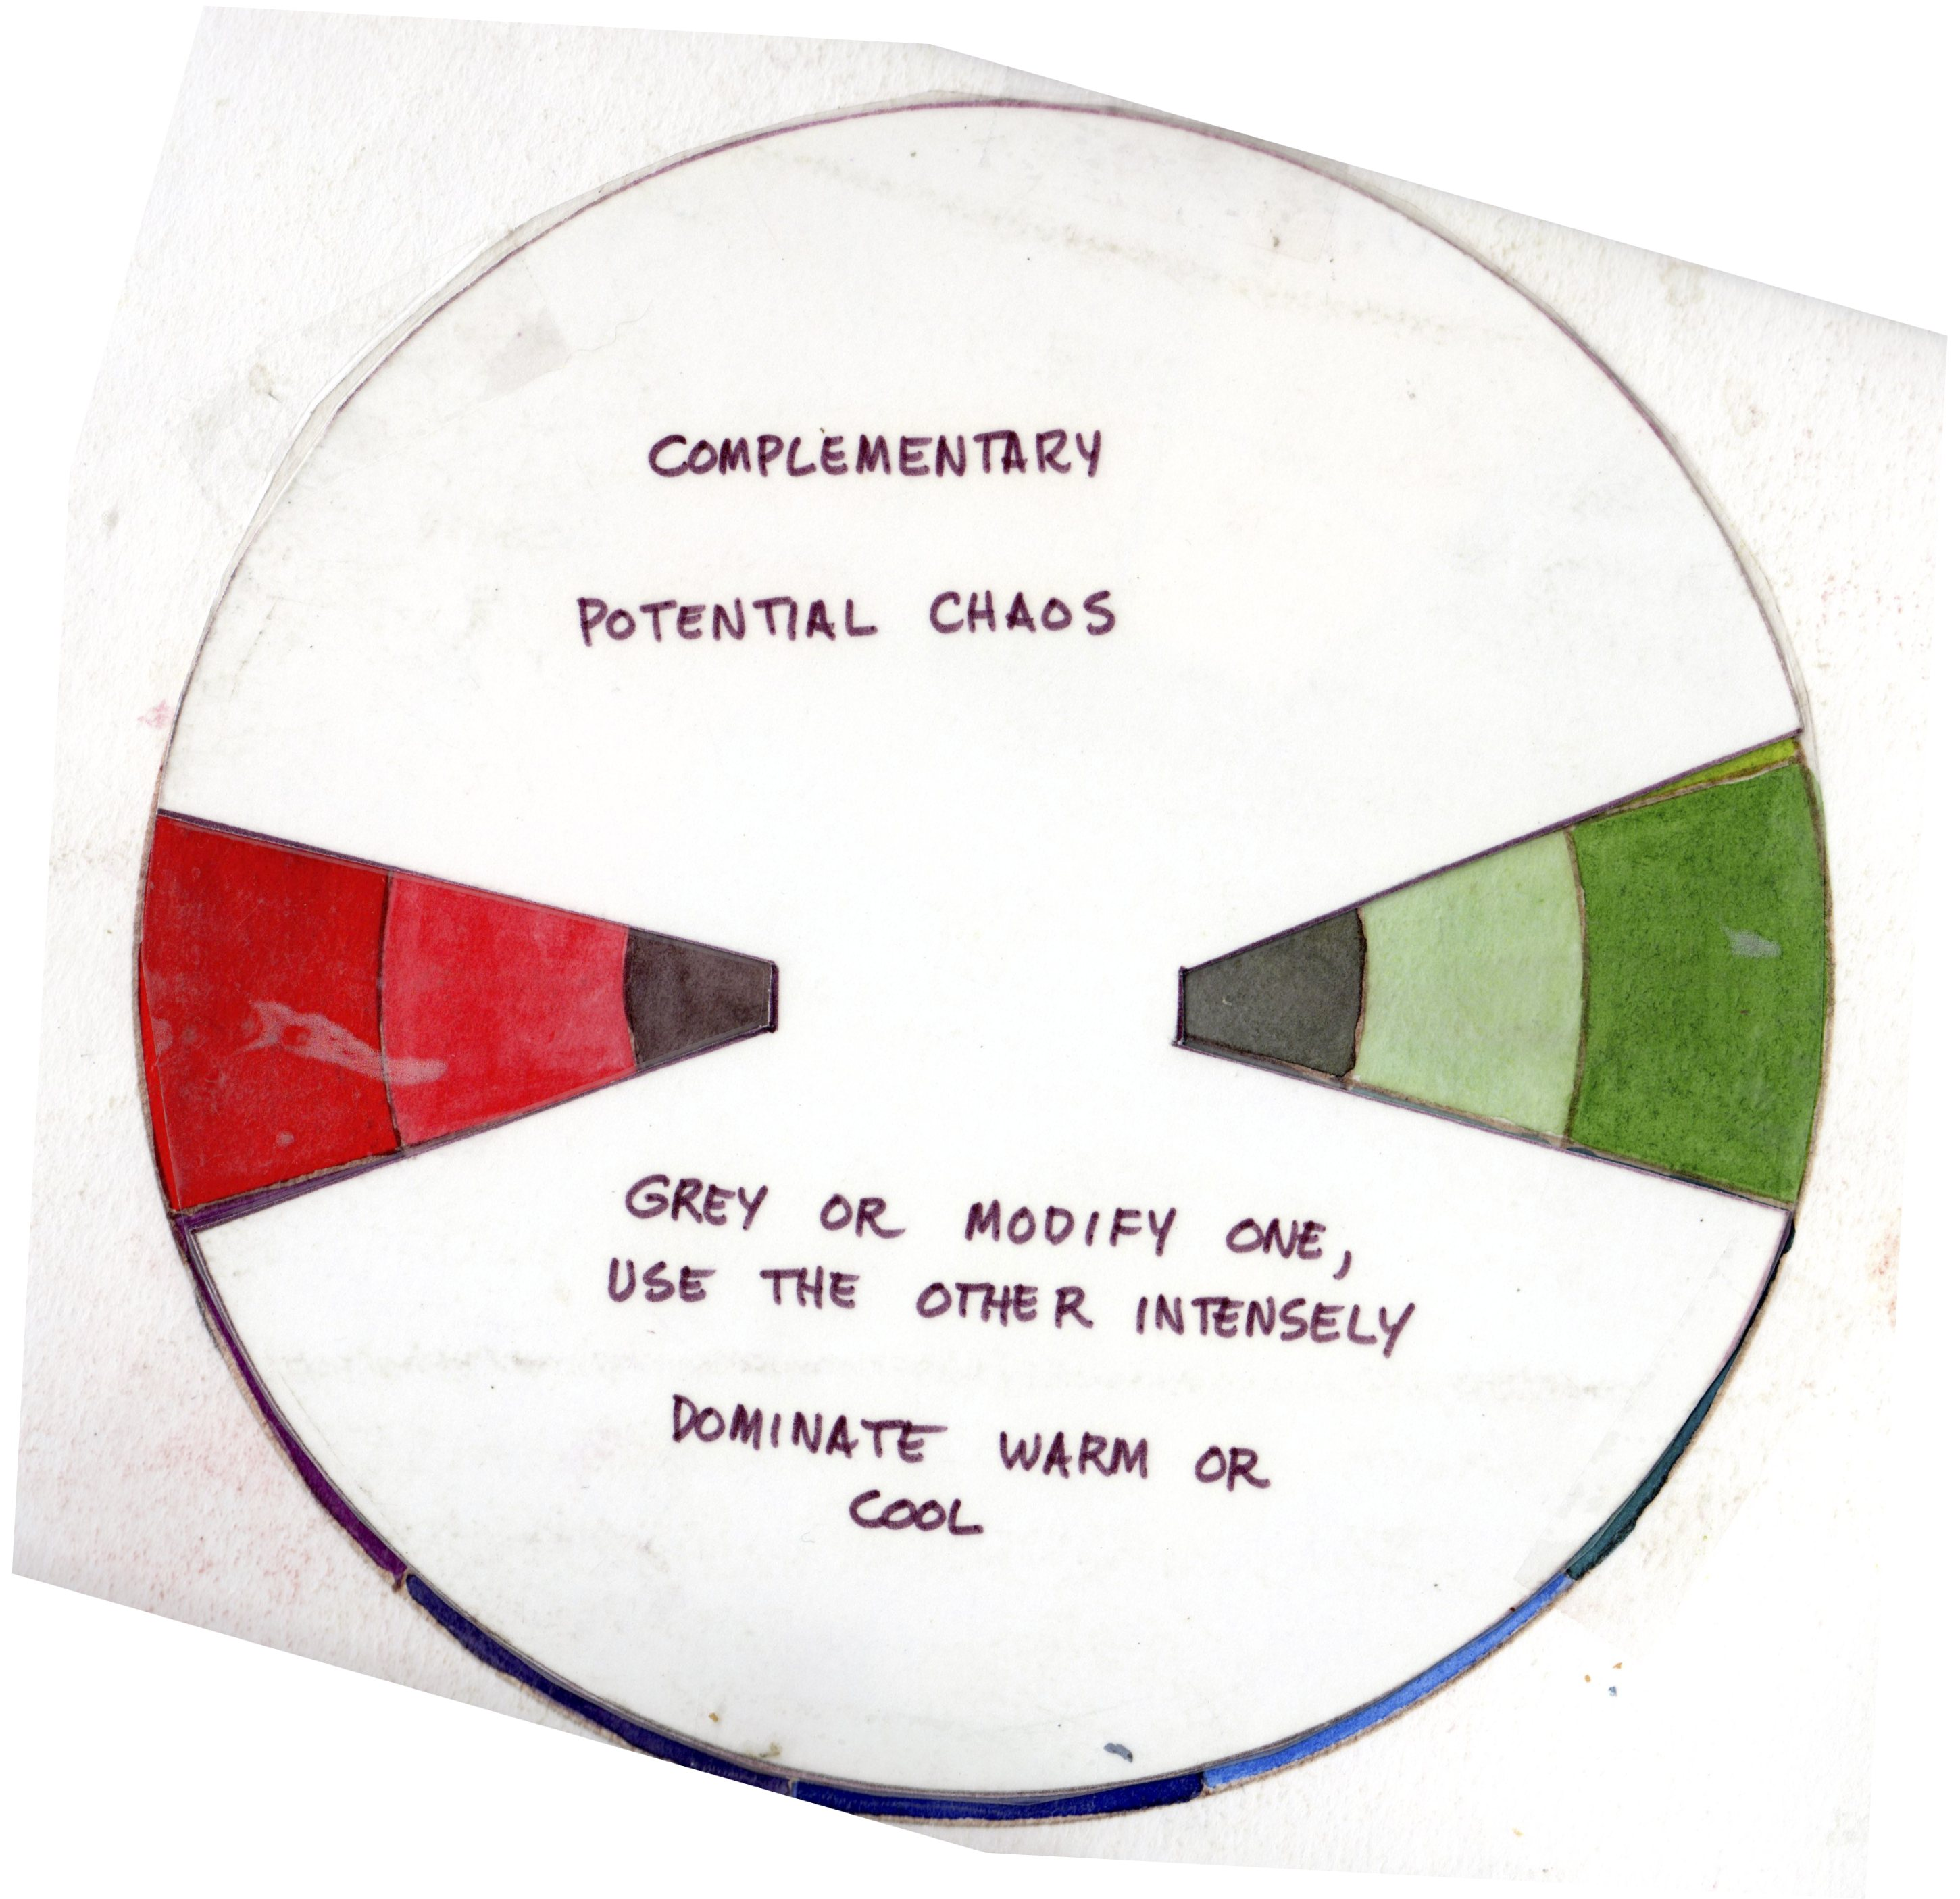 Colors That Are Opposite Each Other On The Color Wheel Such As Red And Green Said To Be Complementary Notice Is Not Complimentary